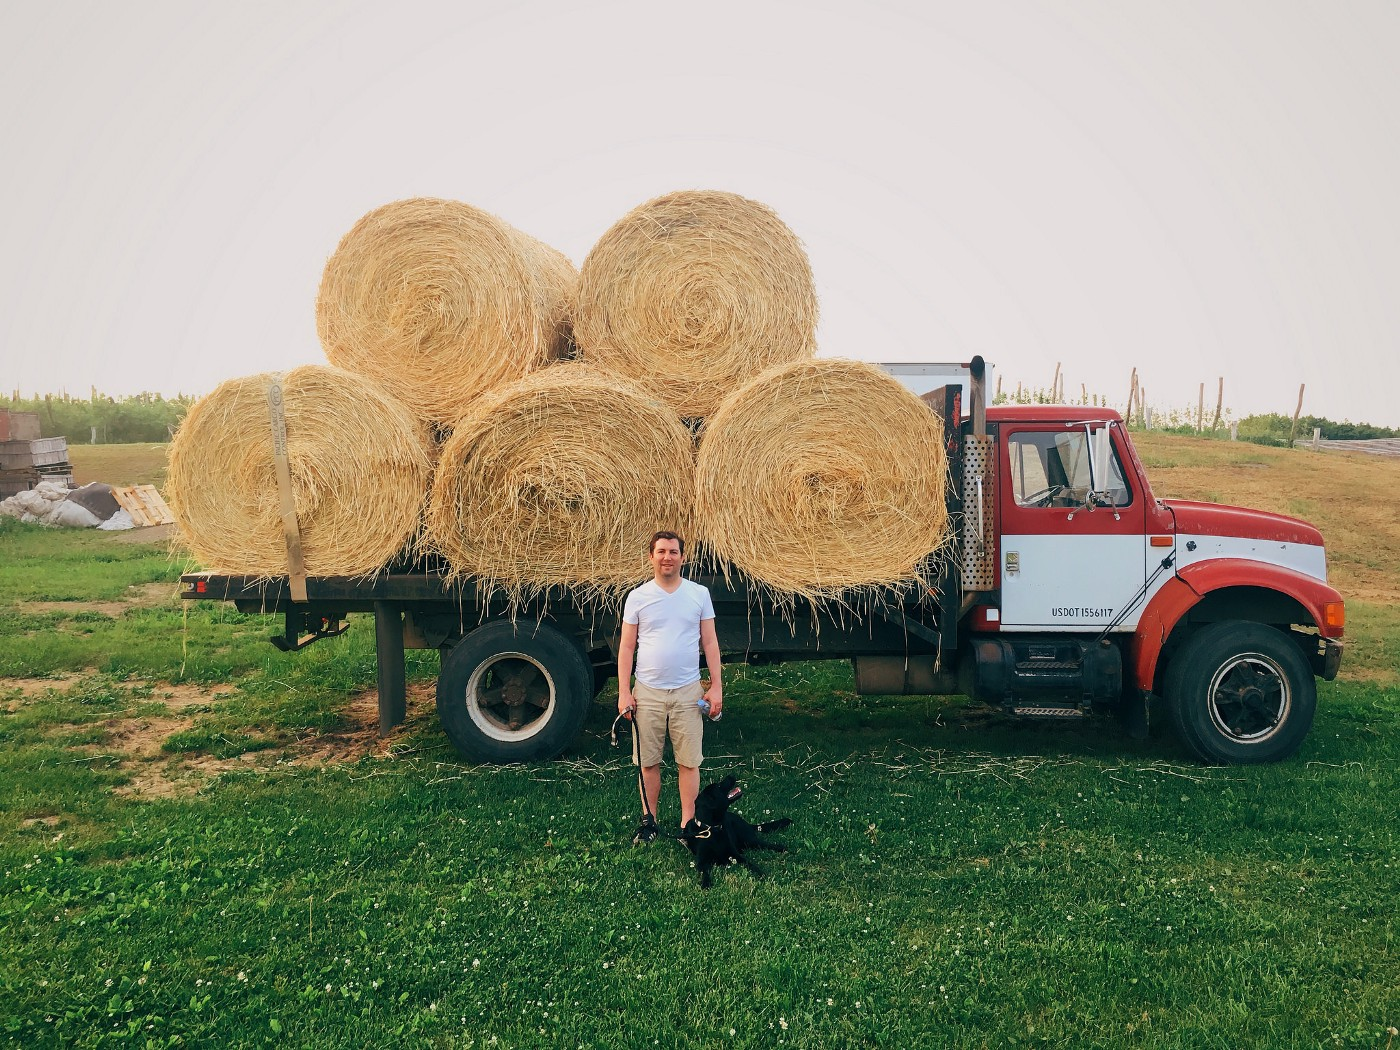 Mat Zucker and his dog Nora in front of a hay truck for the Cidiot podcast